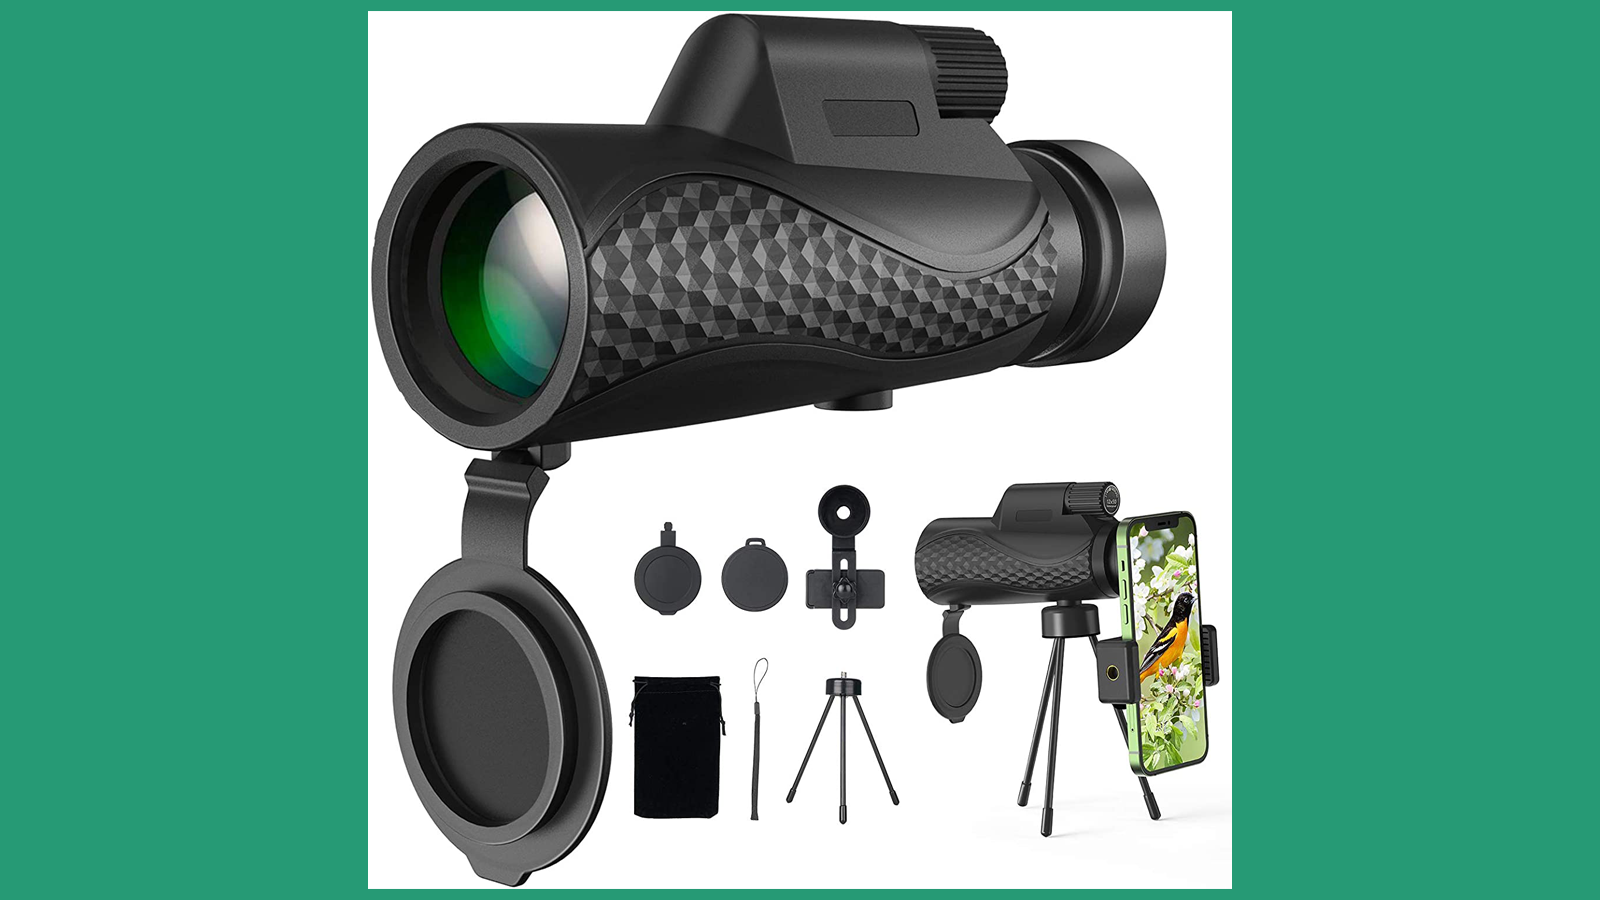 This Monocular Telescope Lets You See Far-Away Views with Ease